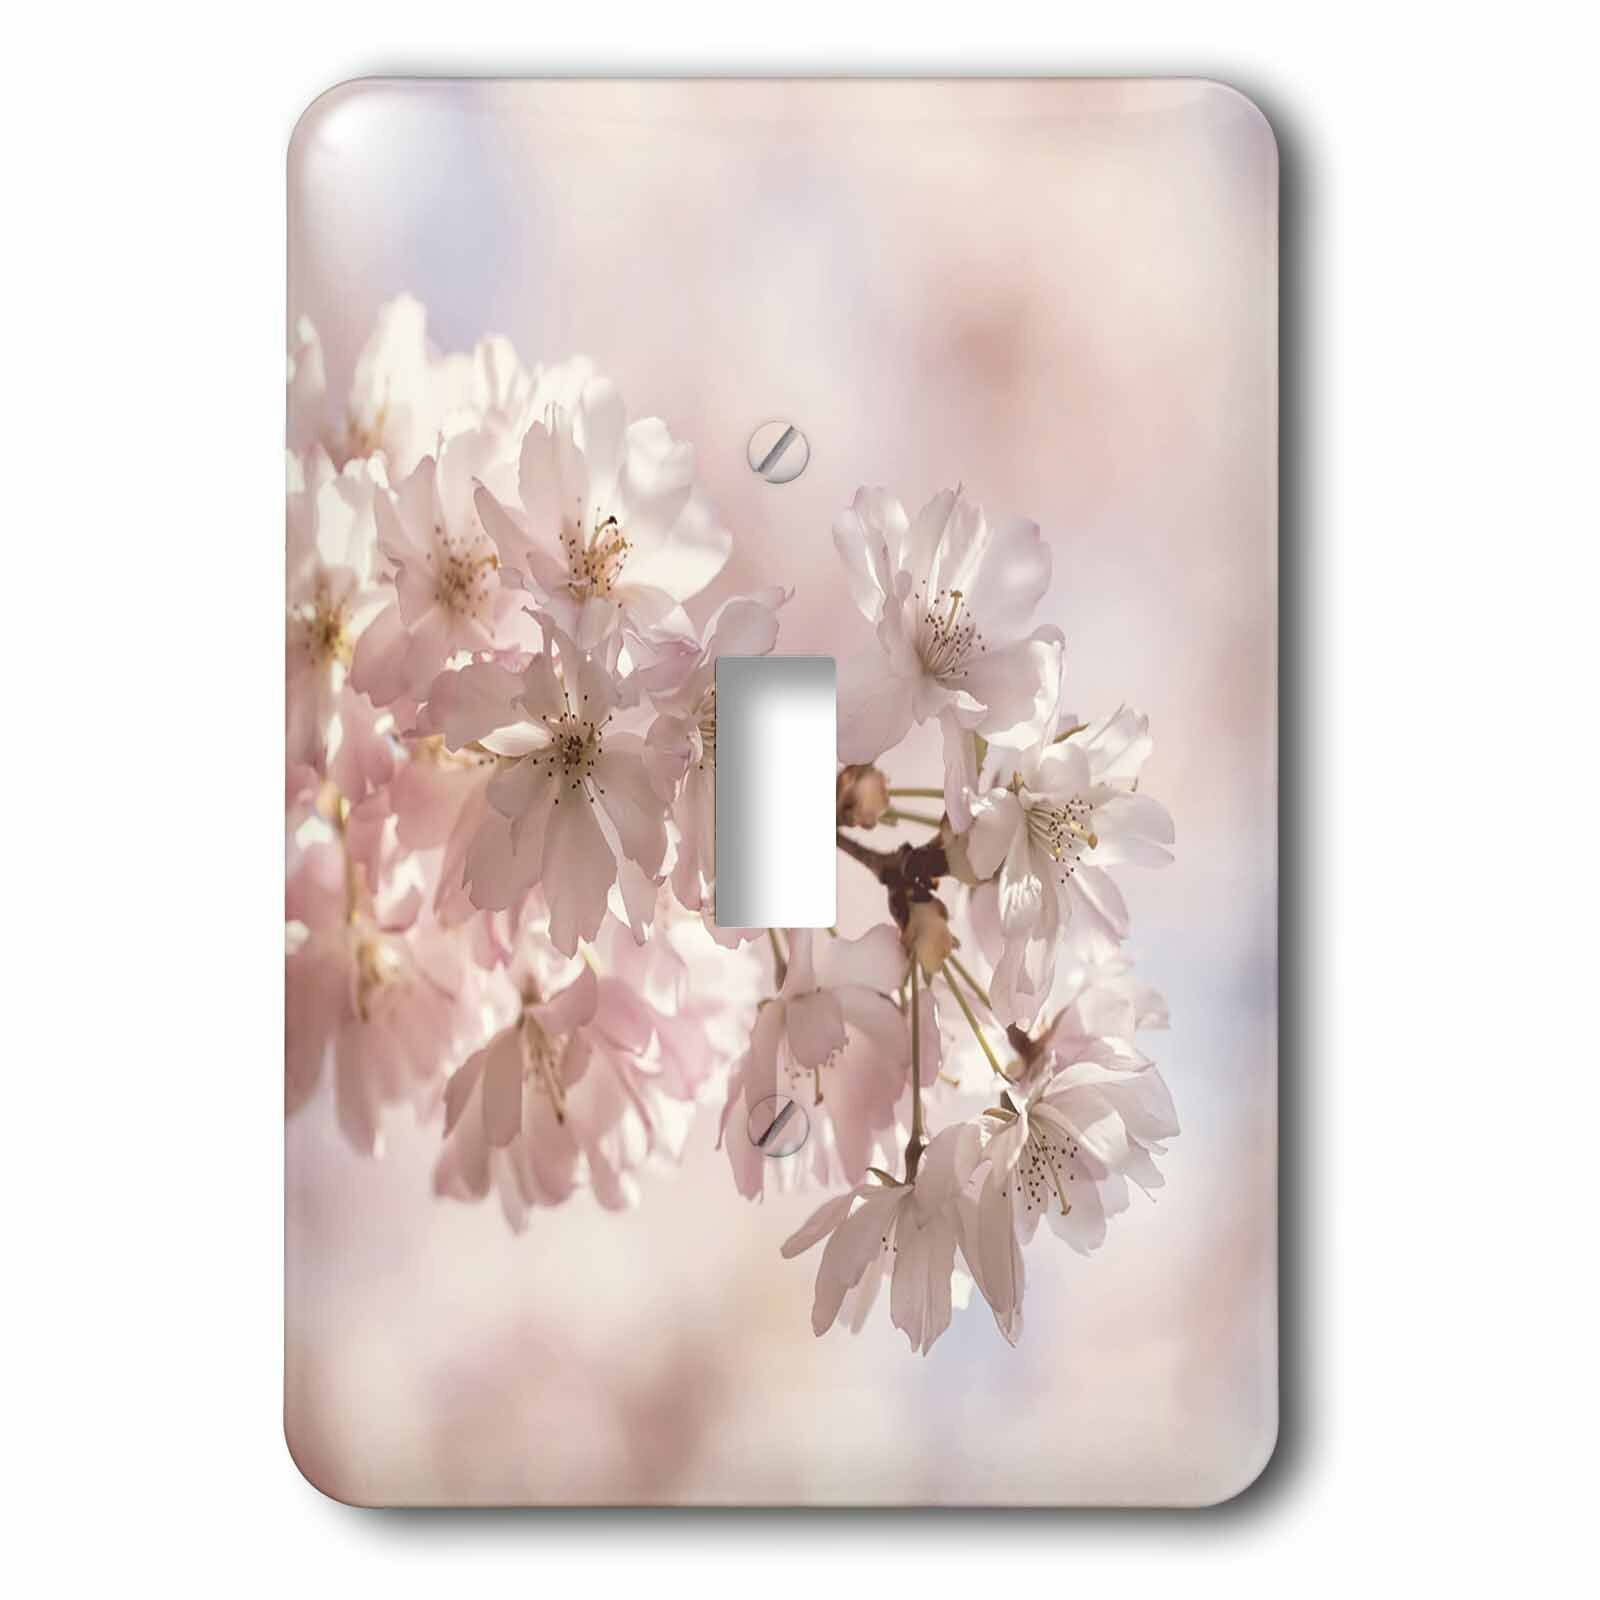 3drose Asian Cherry Blossoms 1 Gang Toggle Light Switch Wall Plate Wayfair